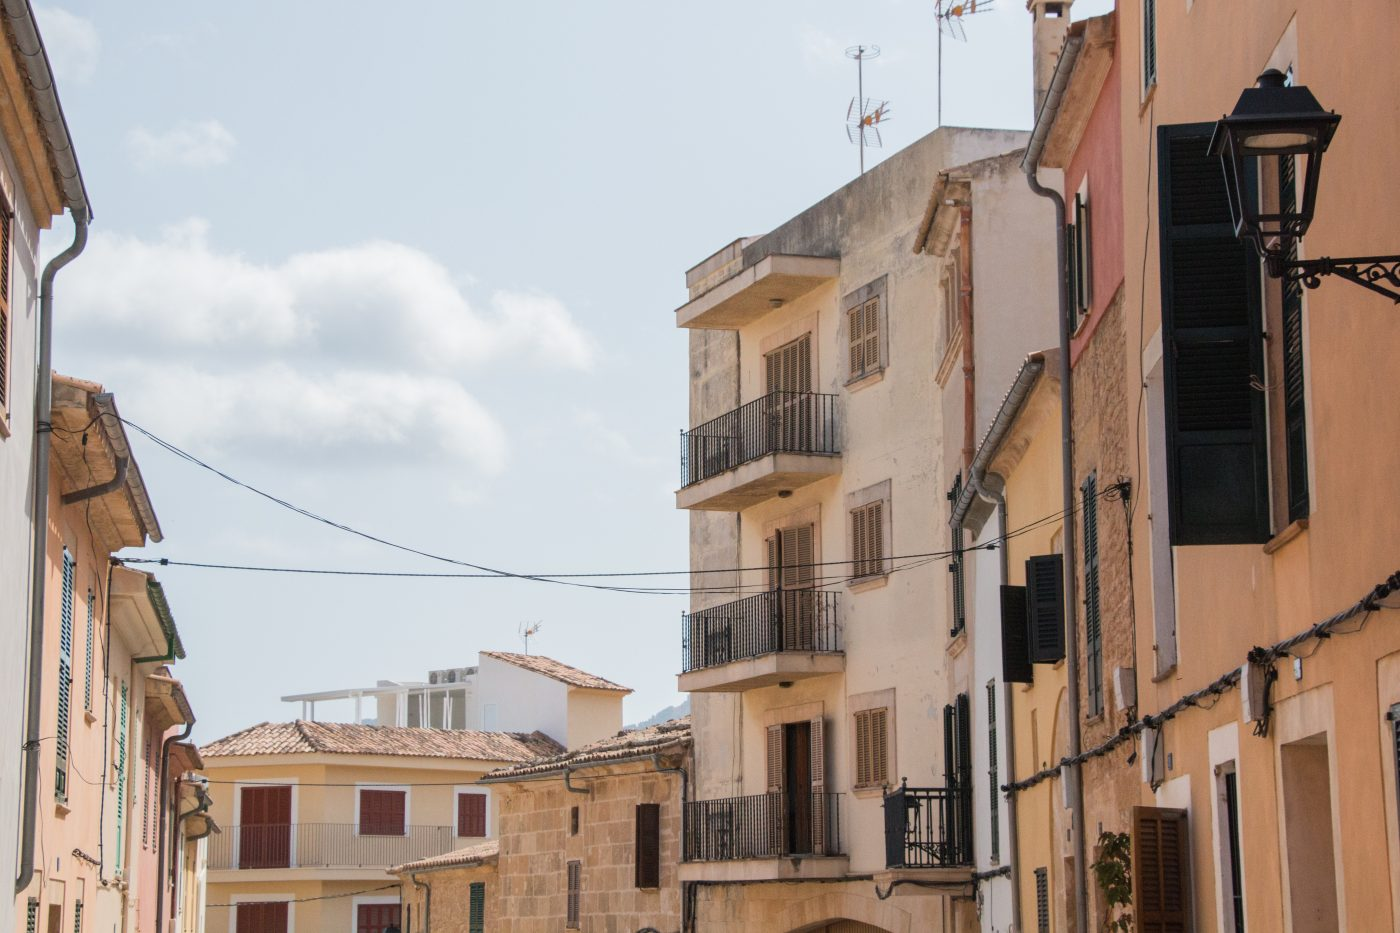 How to find an apartment in Spain